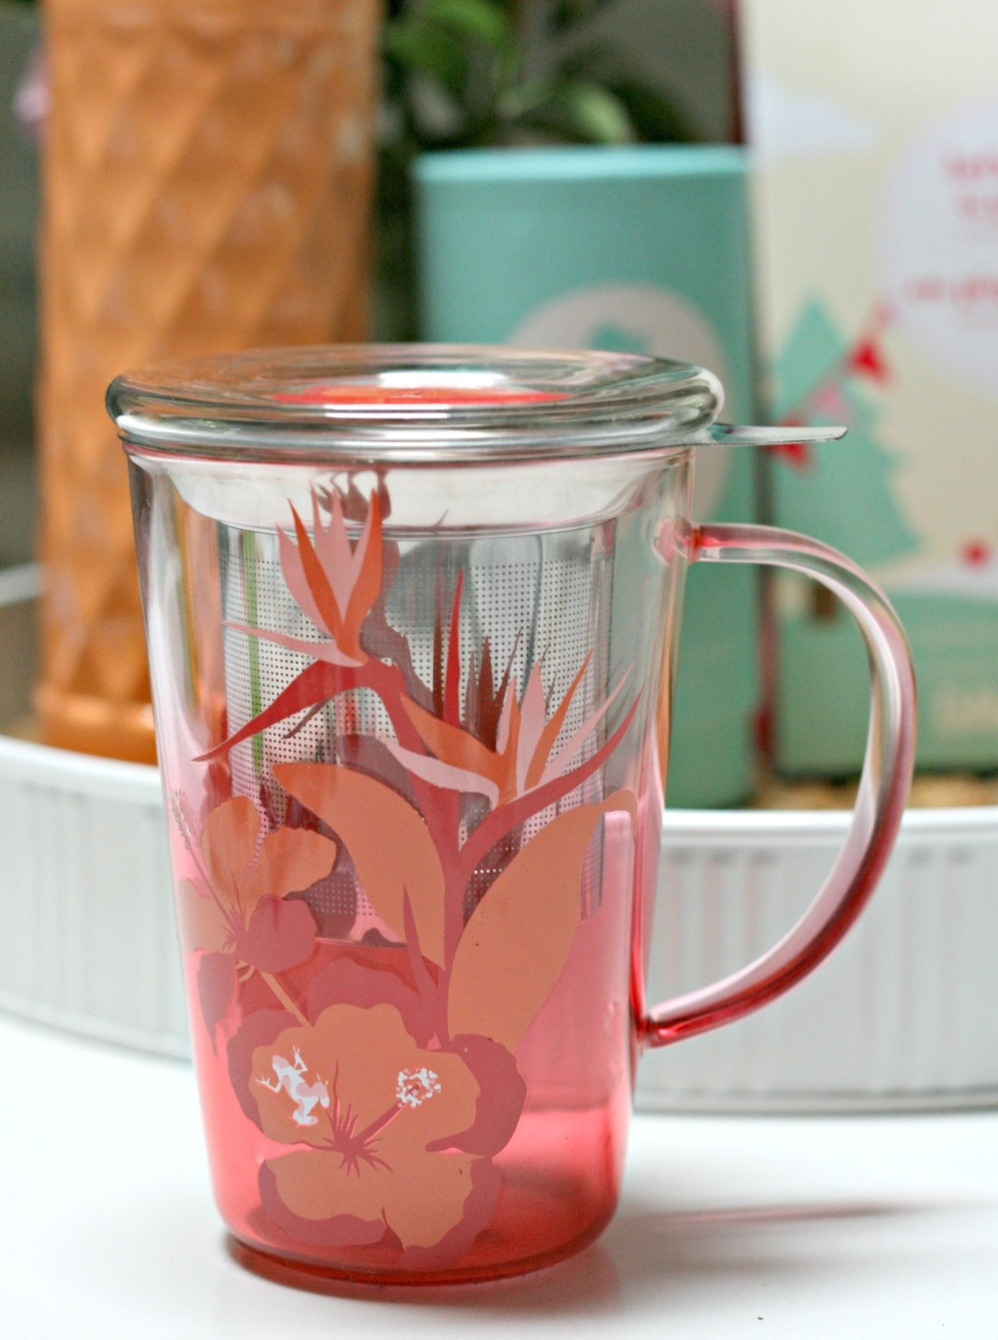 DAVIDsTEA hibiscus perfect glass mug